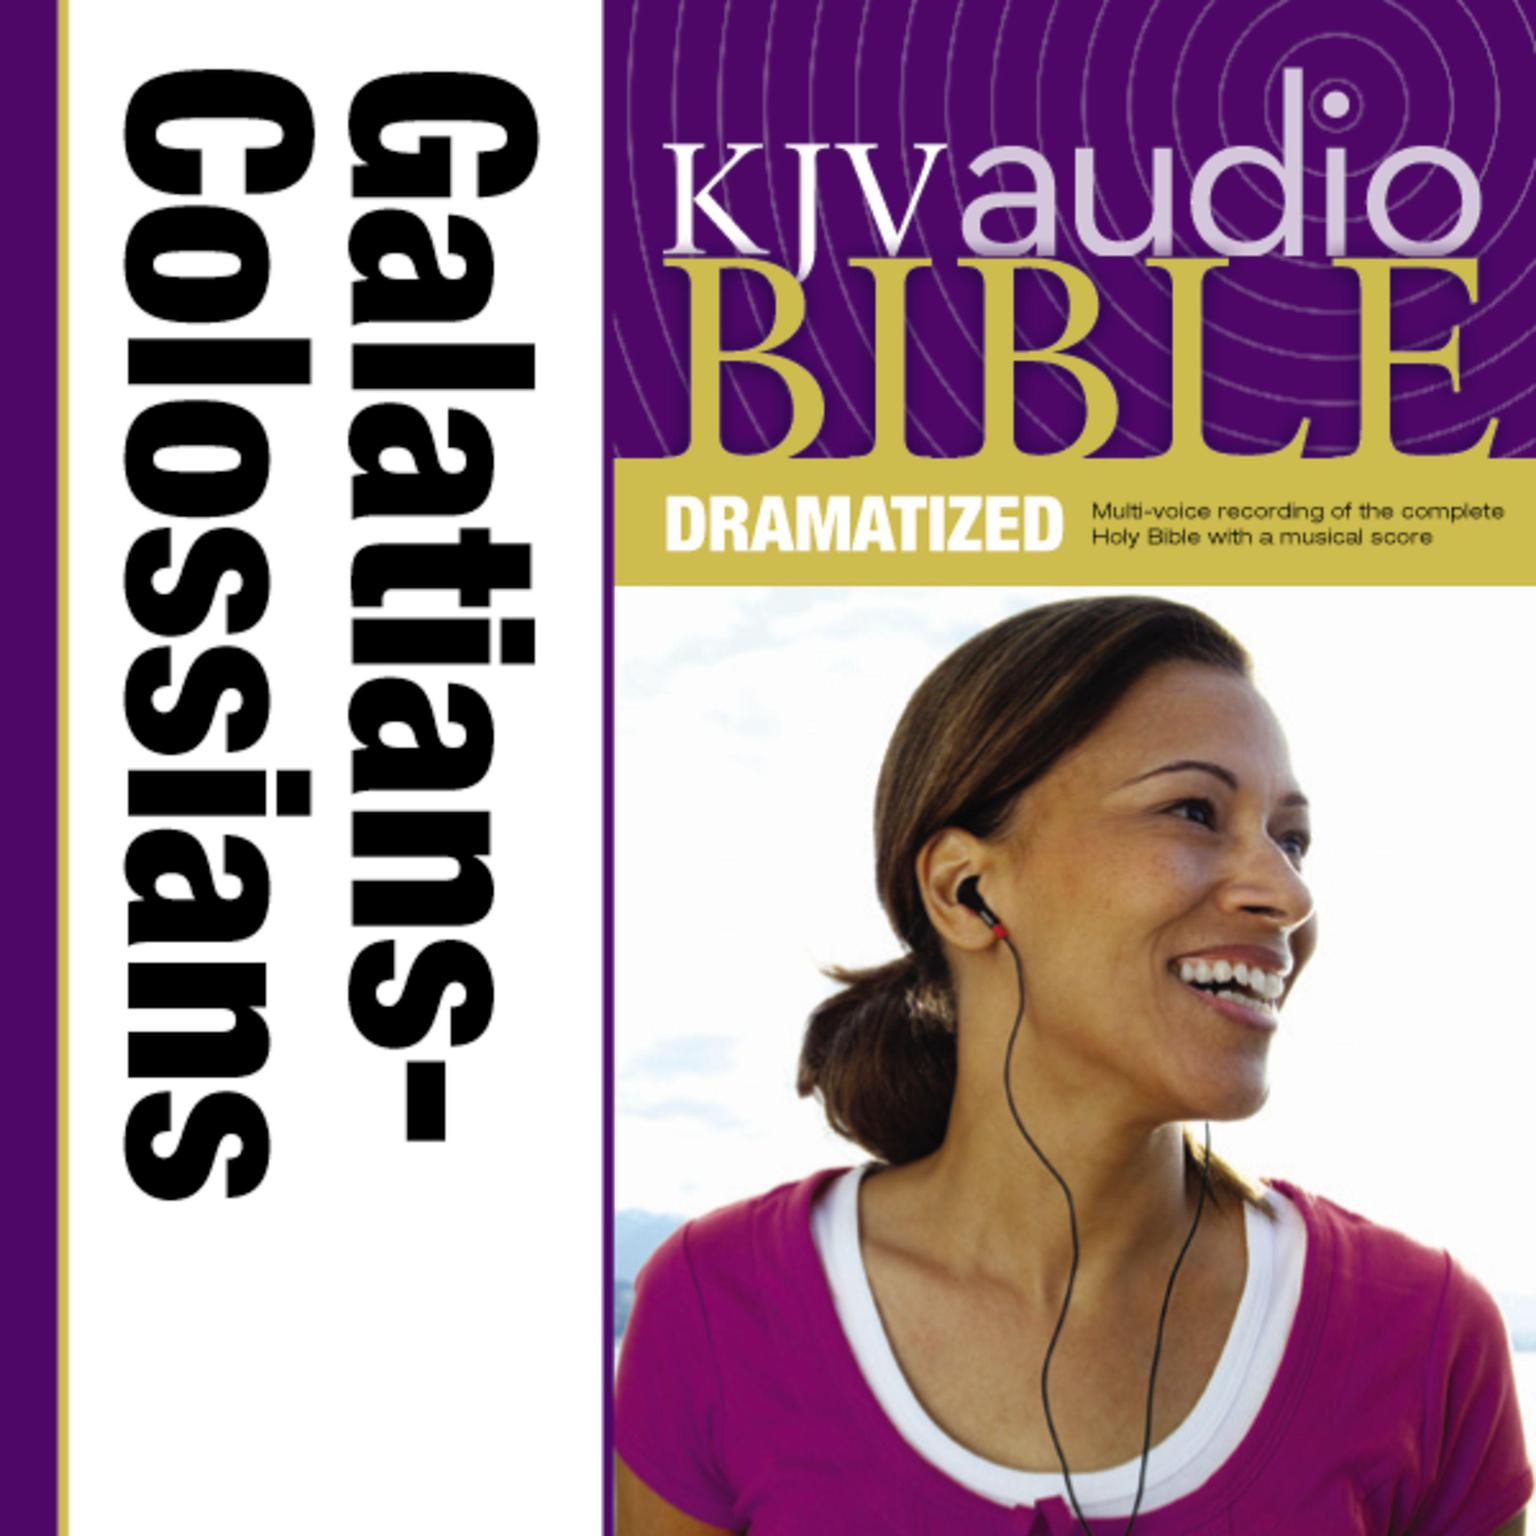 Printable KJV, Audio Bible, Dramatized: Galatians, Ephesians, Philippians, and Colossians, Audio Download Audiobook Cover Art